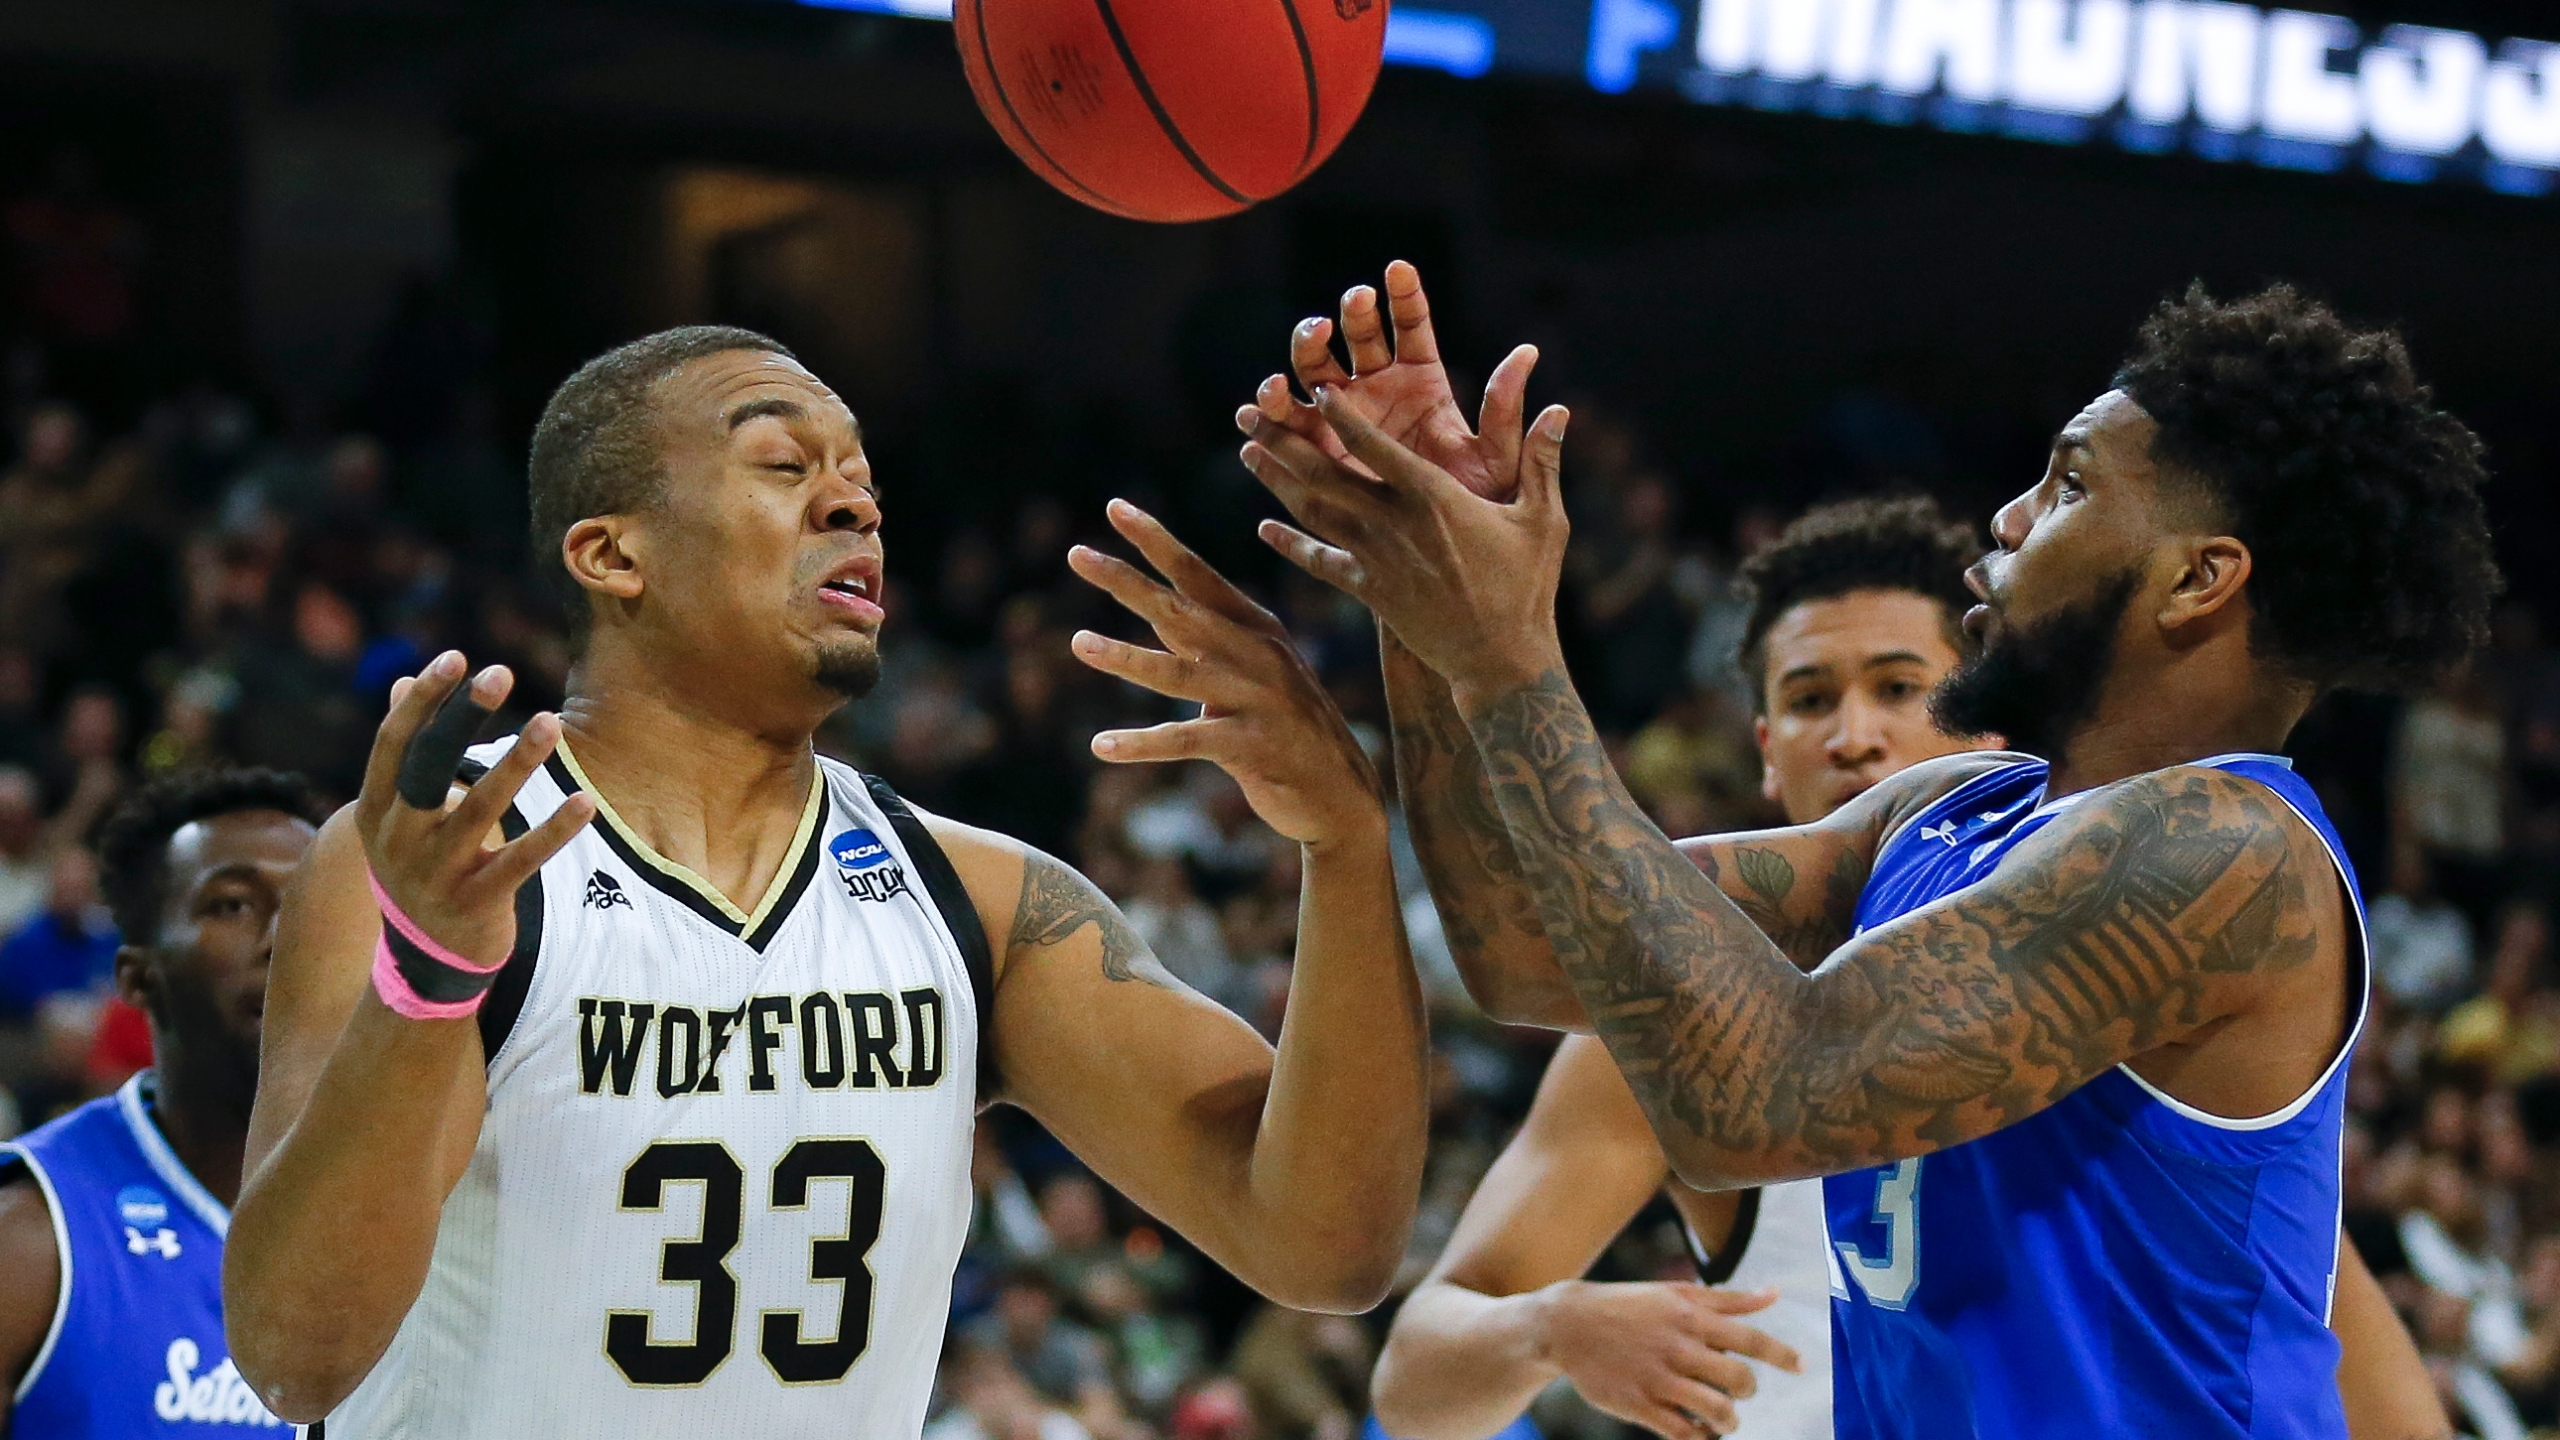 NCAA_Seton_Hall_Wofford_Basketball_77855-159532.jpg98534326